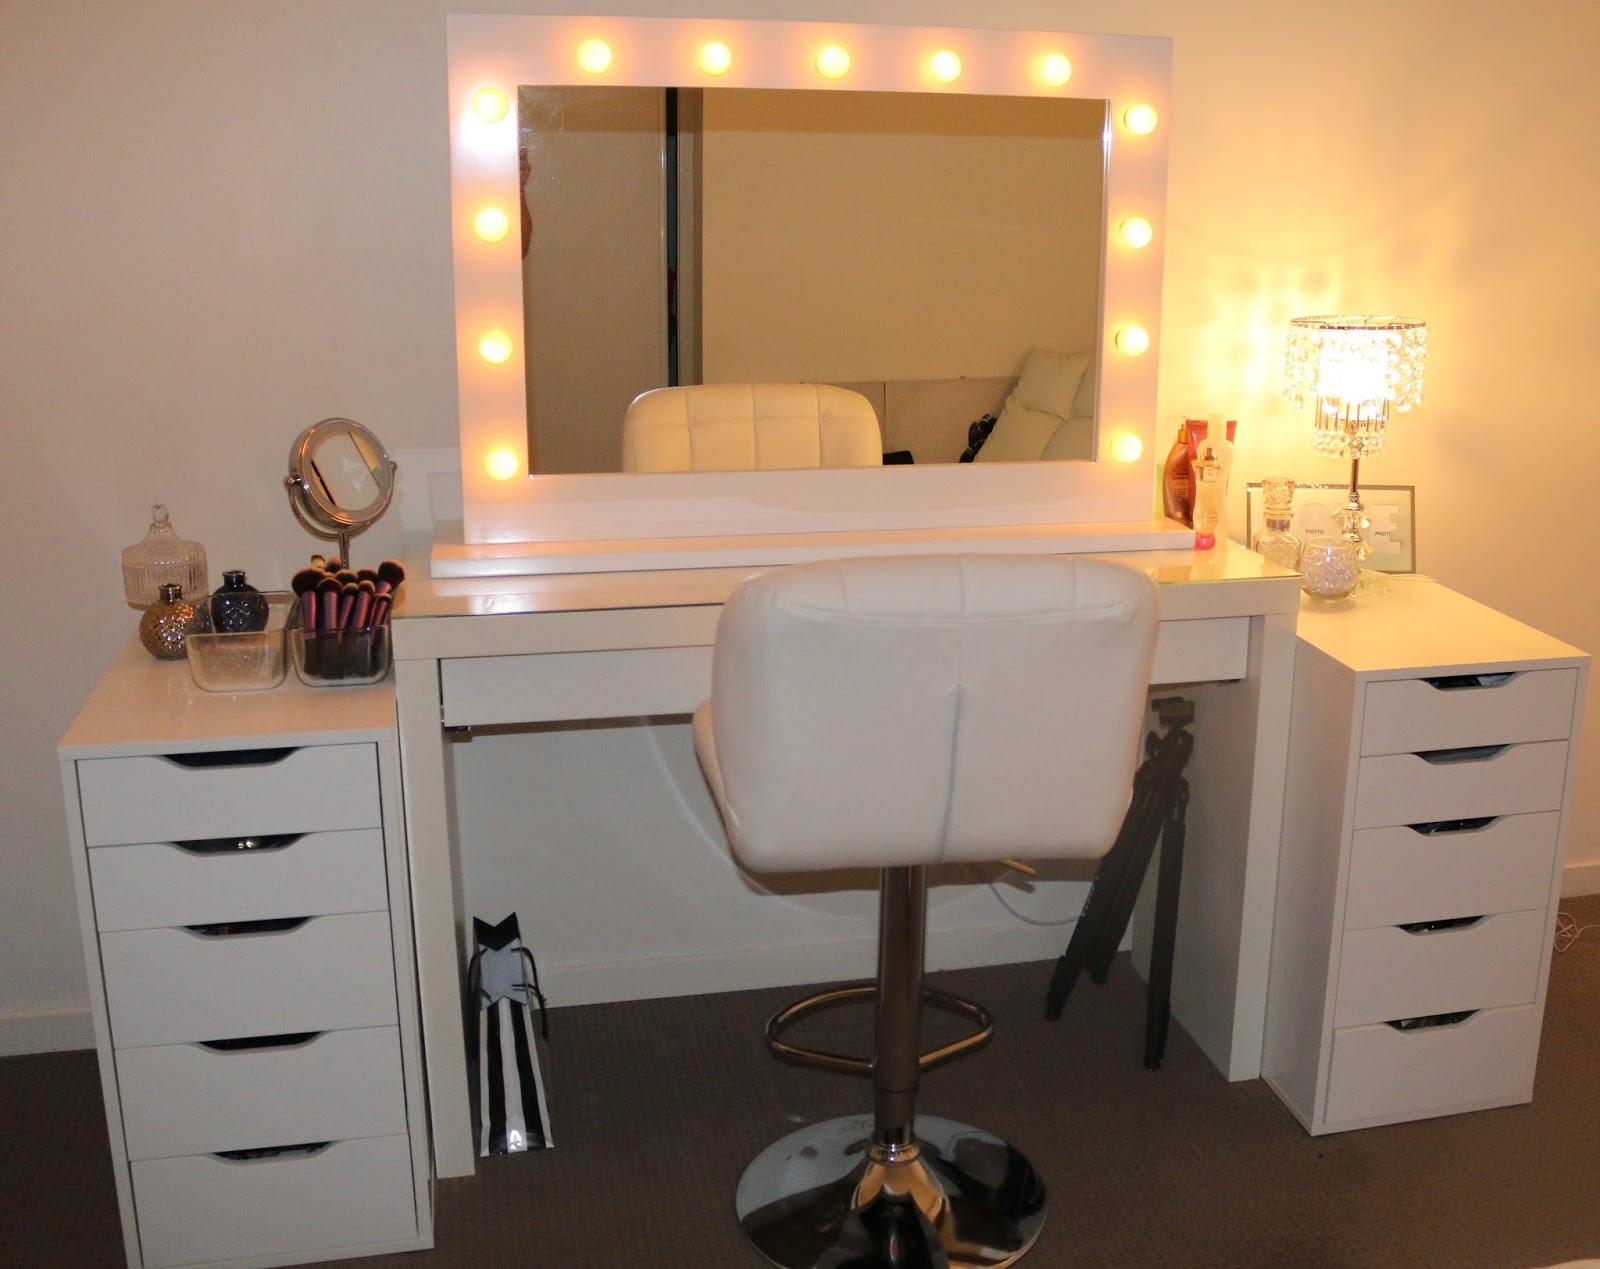 Vanity Mirror With Lights Hollywood Style : ROGUE Hair Extensions: IKEA MAKEUP VANITY & HOLLYWOOD LIGHTS!